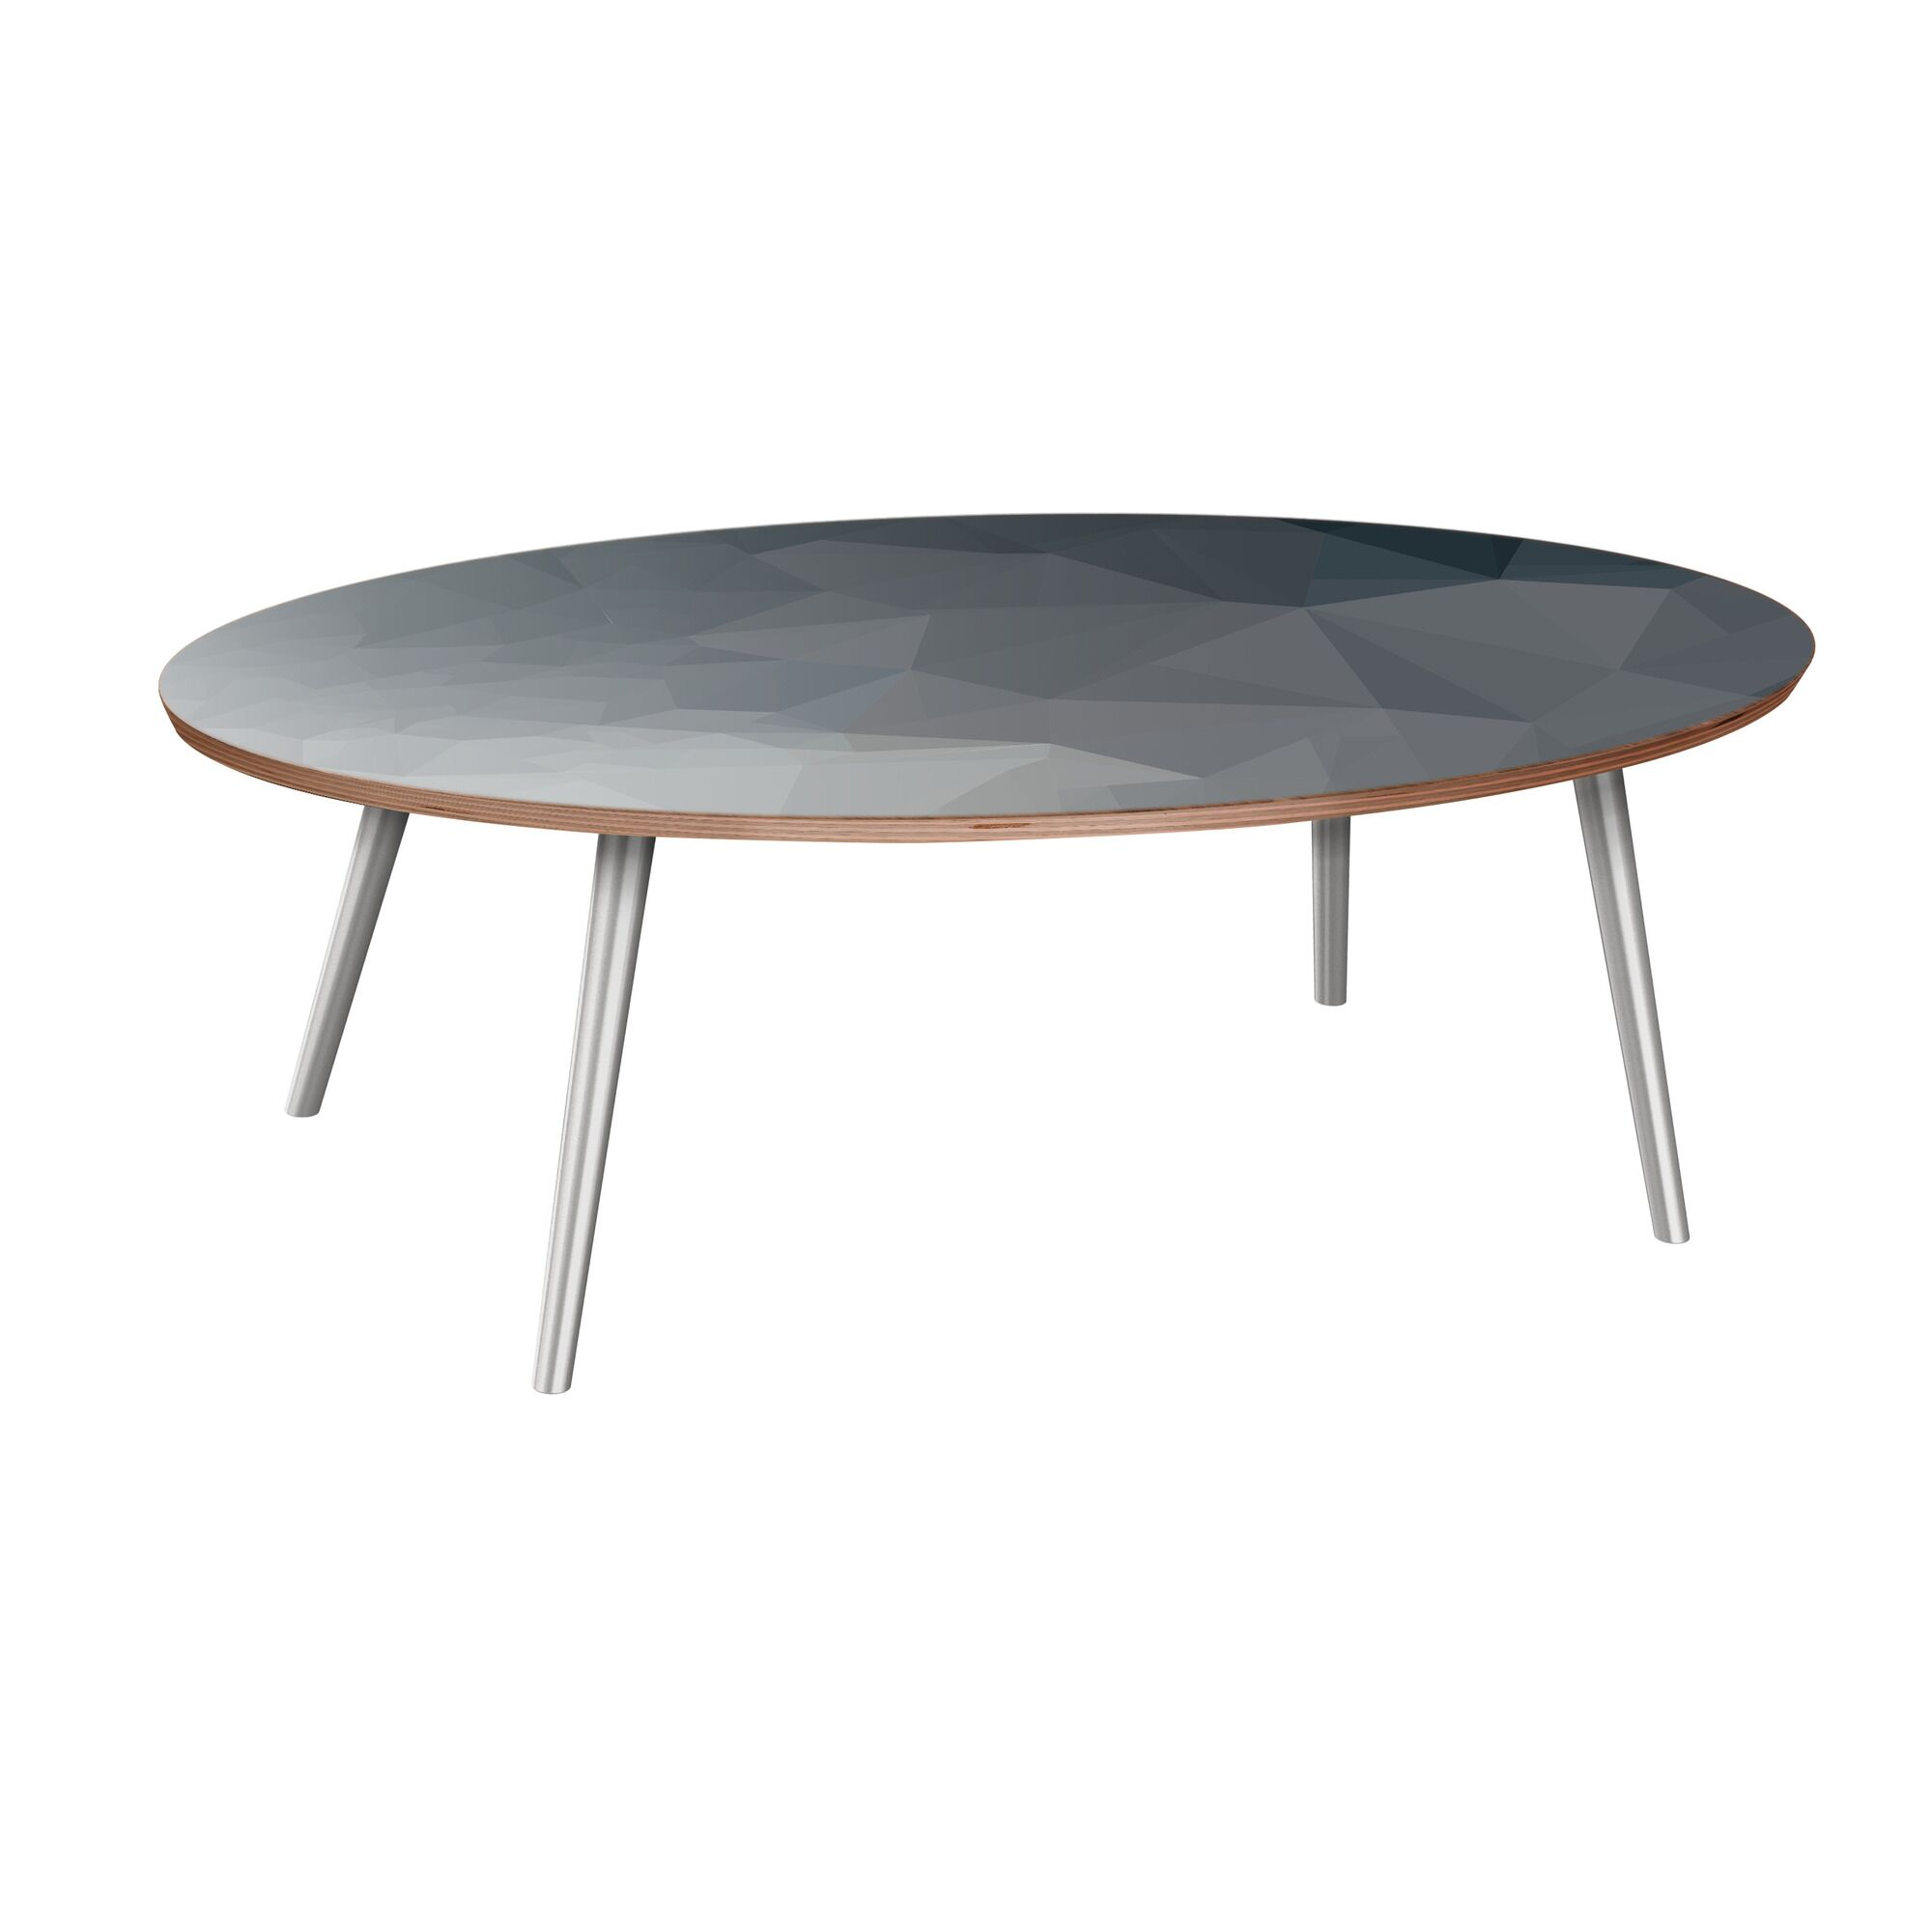 Henkle Coffee Table Table Base Color: Chrome, Table Top Boarder Color: Walnut, Table Top Color: Gray/Black